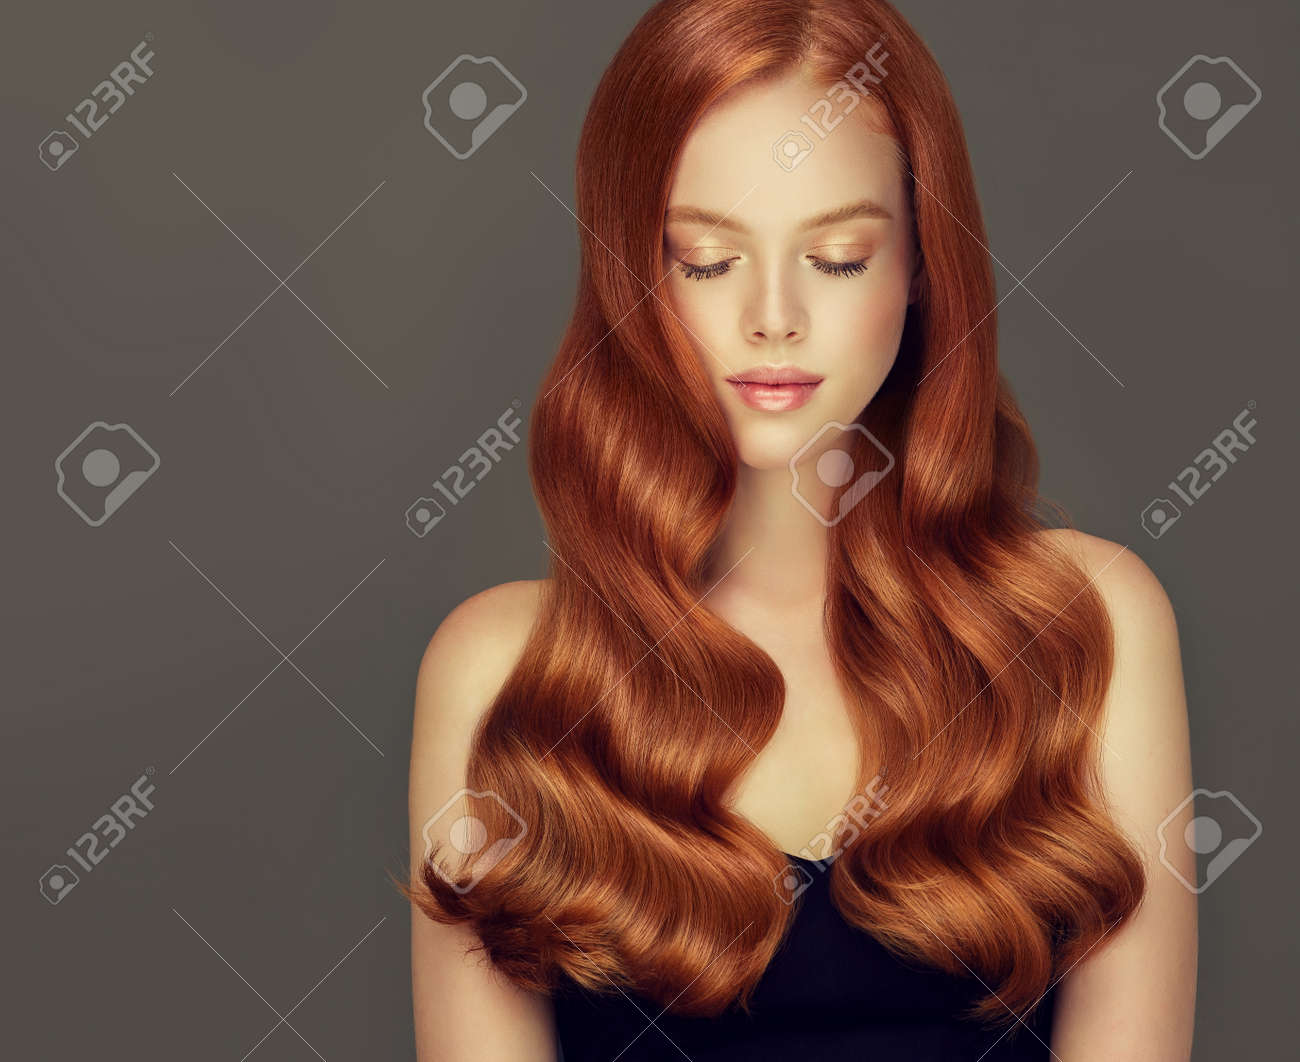 Young, red haired beautiful model with long, curly, well groomed hair. Irish beauty. Excellent hair waves. Hairdressing art and hair care. - 114695652